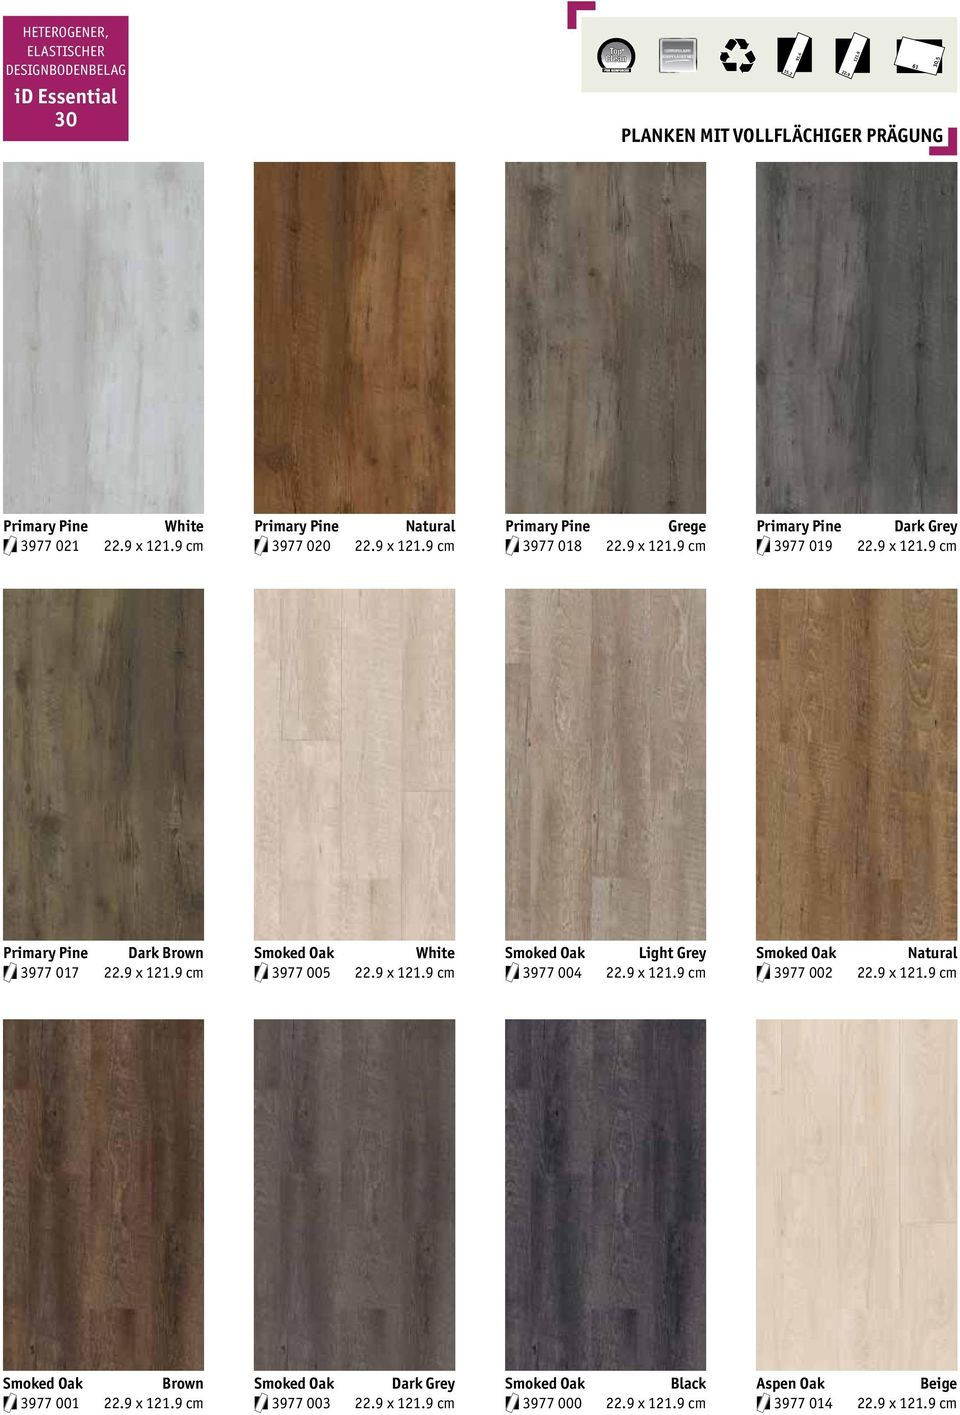 White Smoked Oak Light Grey Smoked Oak Natural 3977 017 x cm 3977 005 x cm 3977 004 x cm 3977 002 x cm Smoked